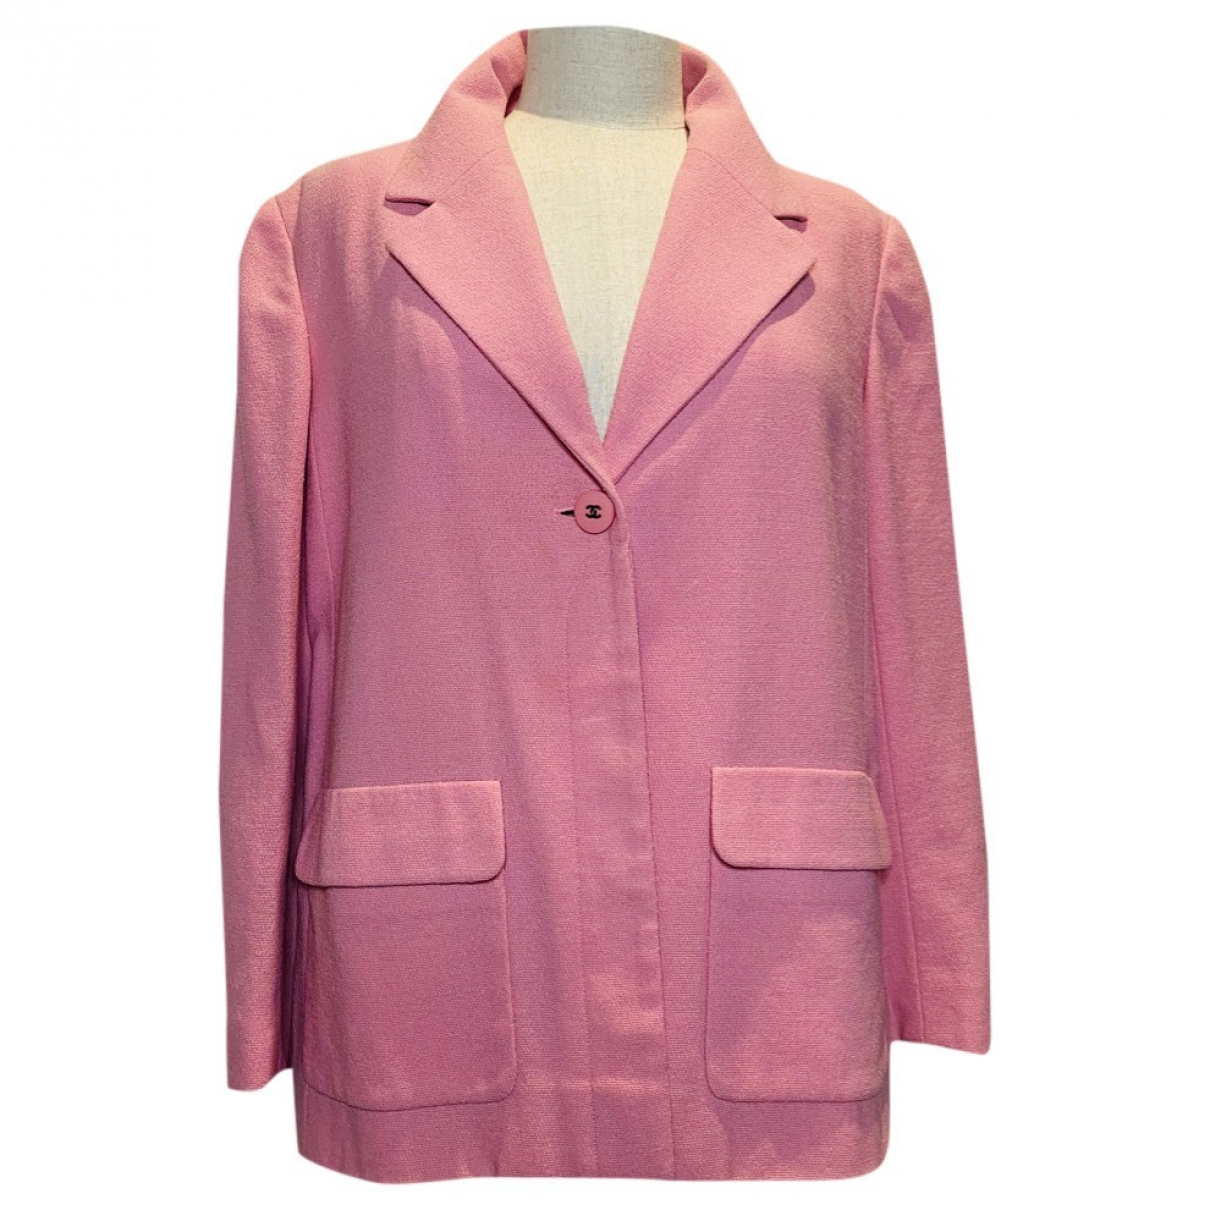 Chanel \N Jacke in  Rosa Wolle